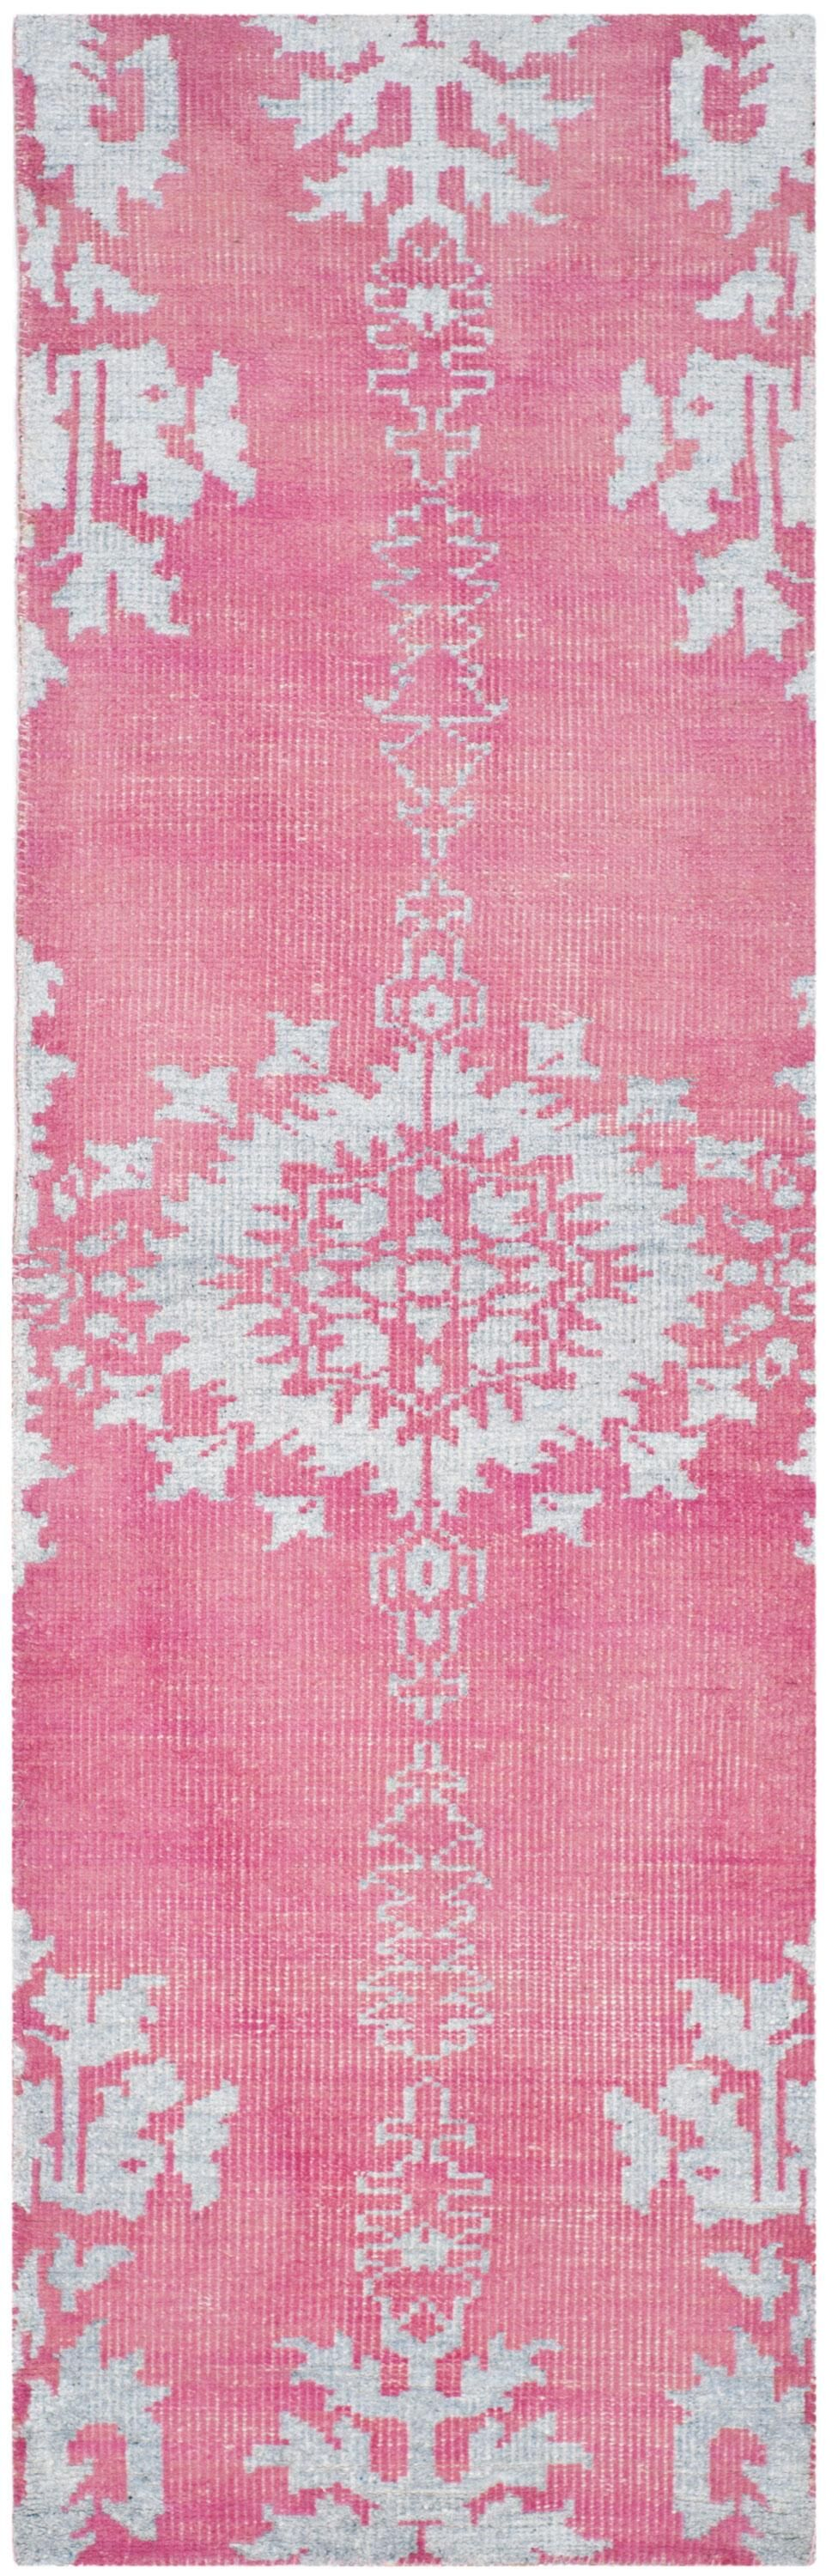 Moulouya Hand-Knotted Pink Area Rug Rug Size: Runner 2'6